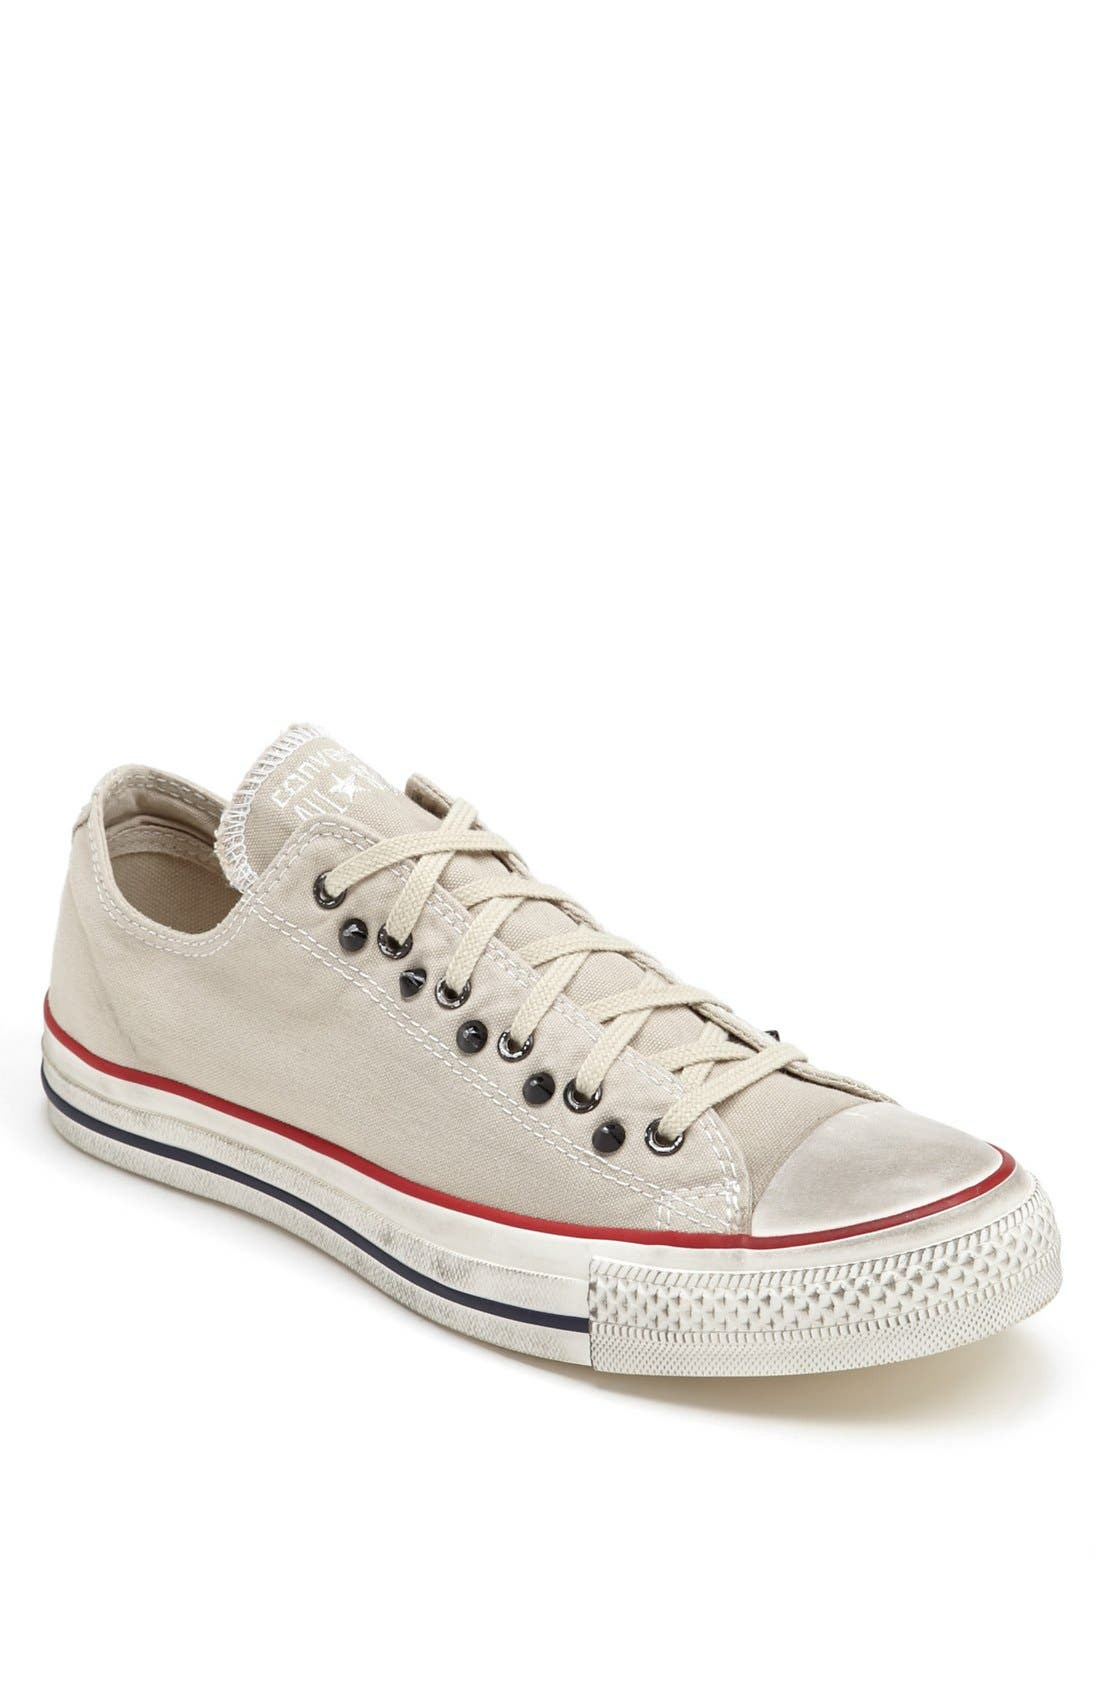 Alternate Image 1 Selected - Converse Chuck Taylor® All Star® Low Sneaker (Men)